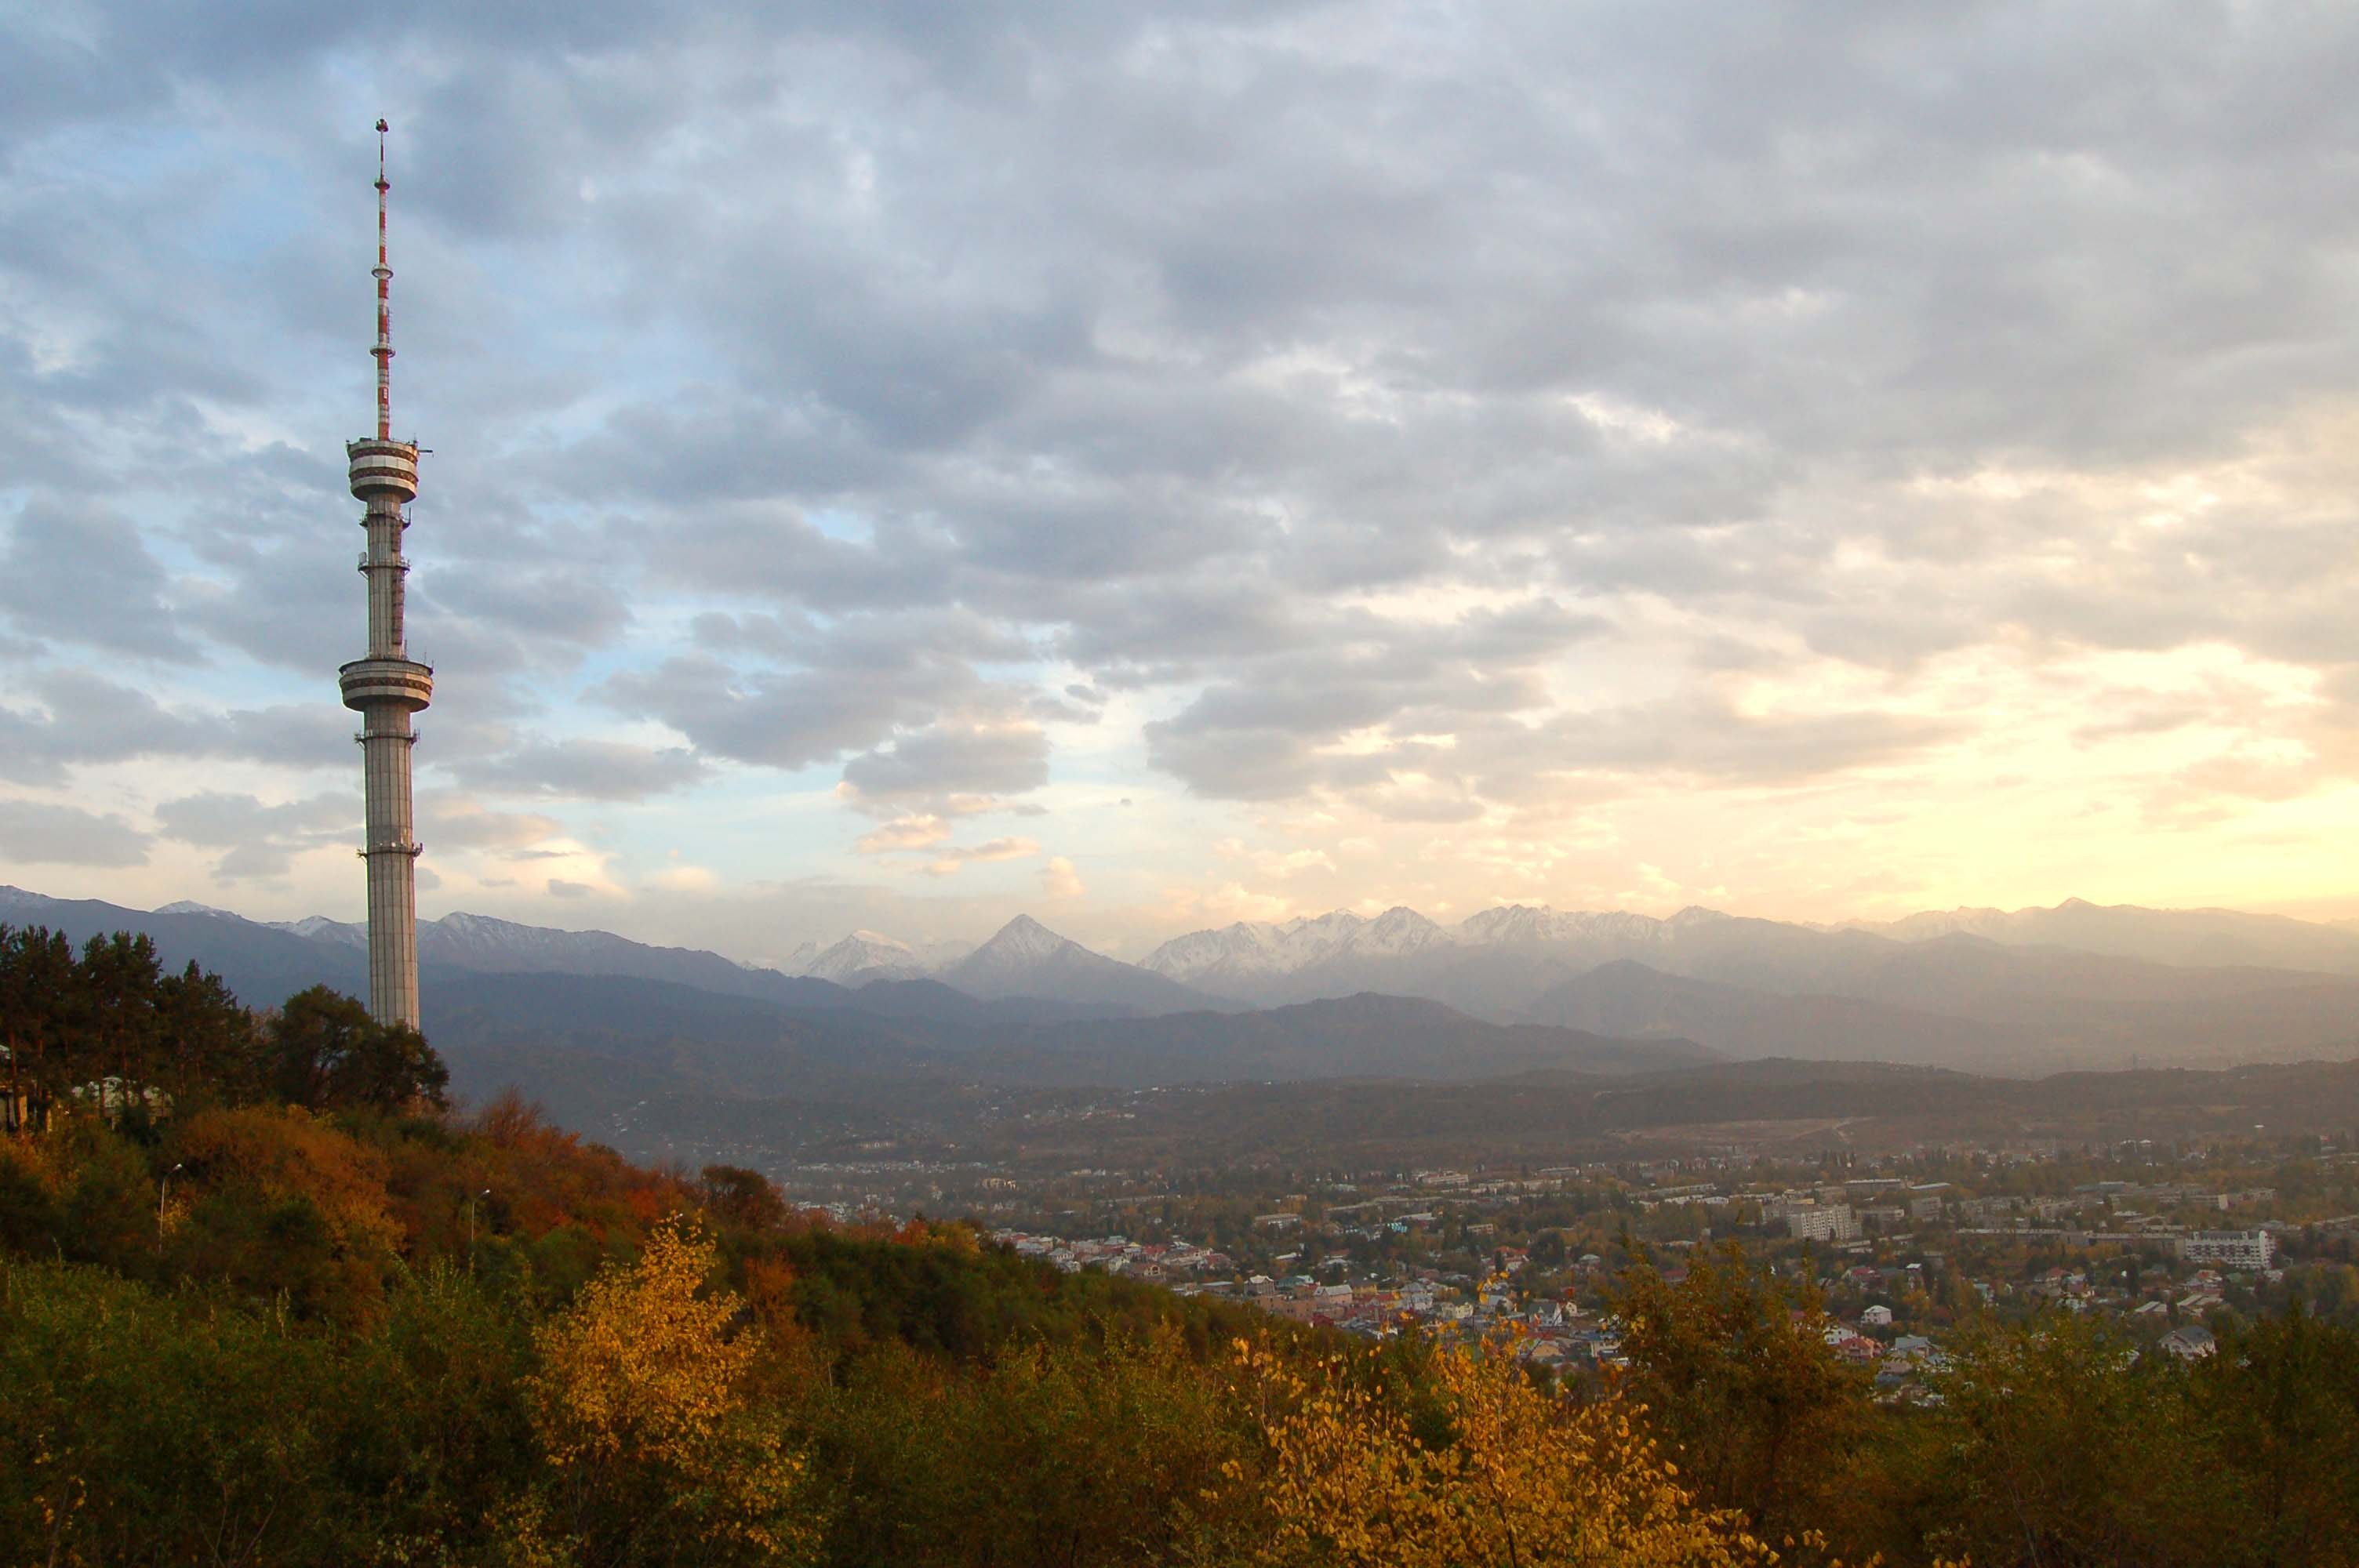 Almaty's TV tower looms high over the city.